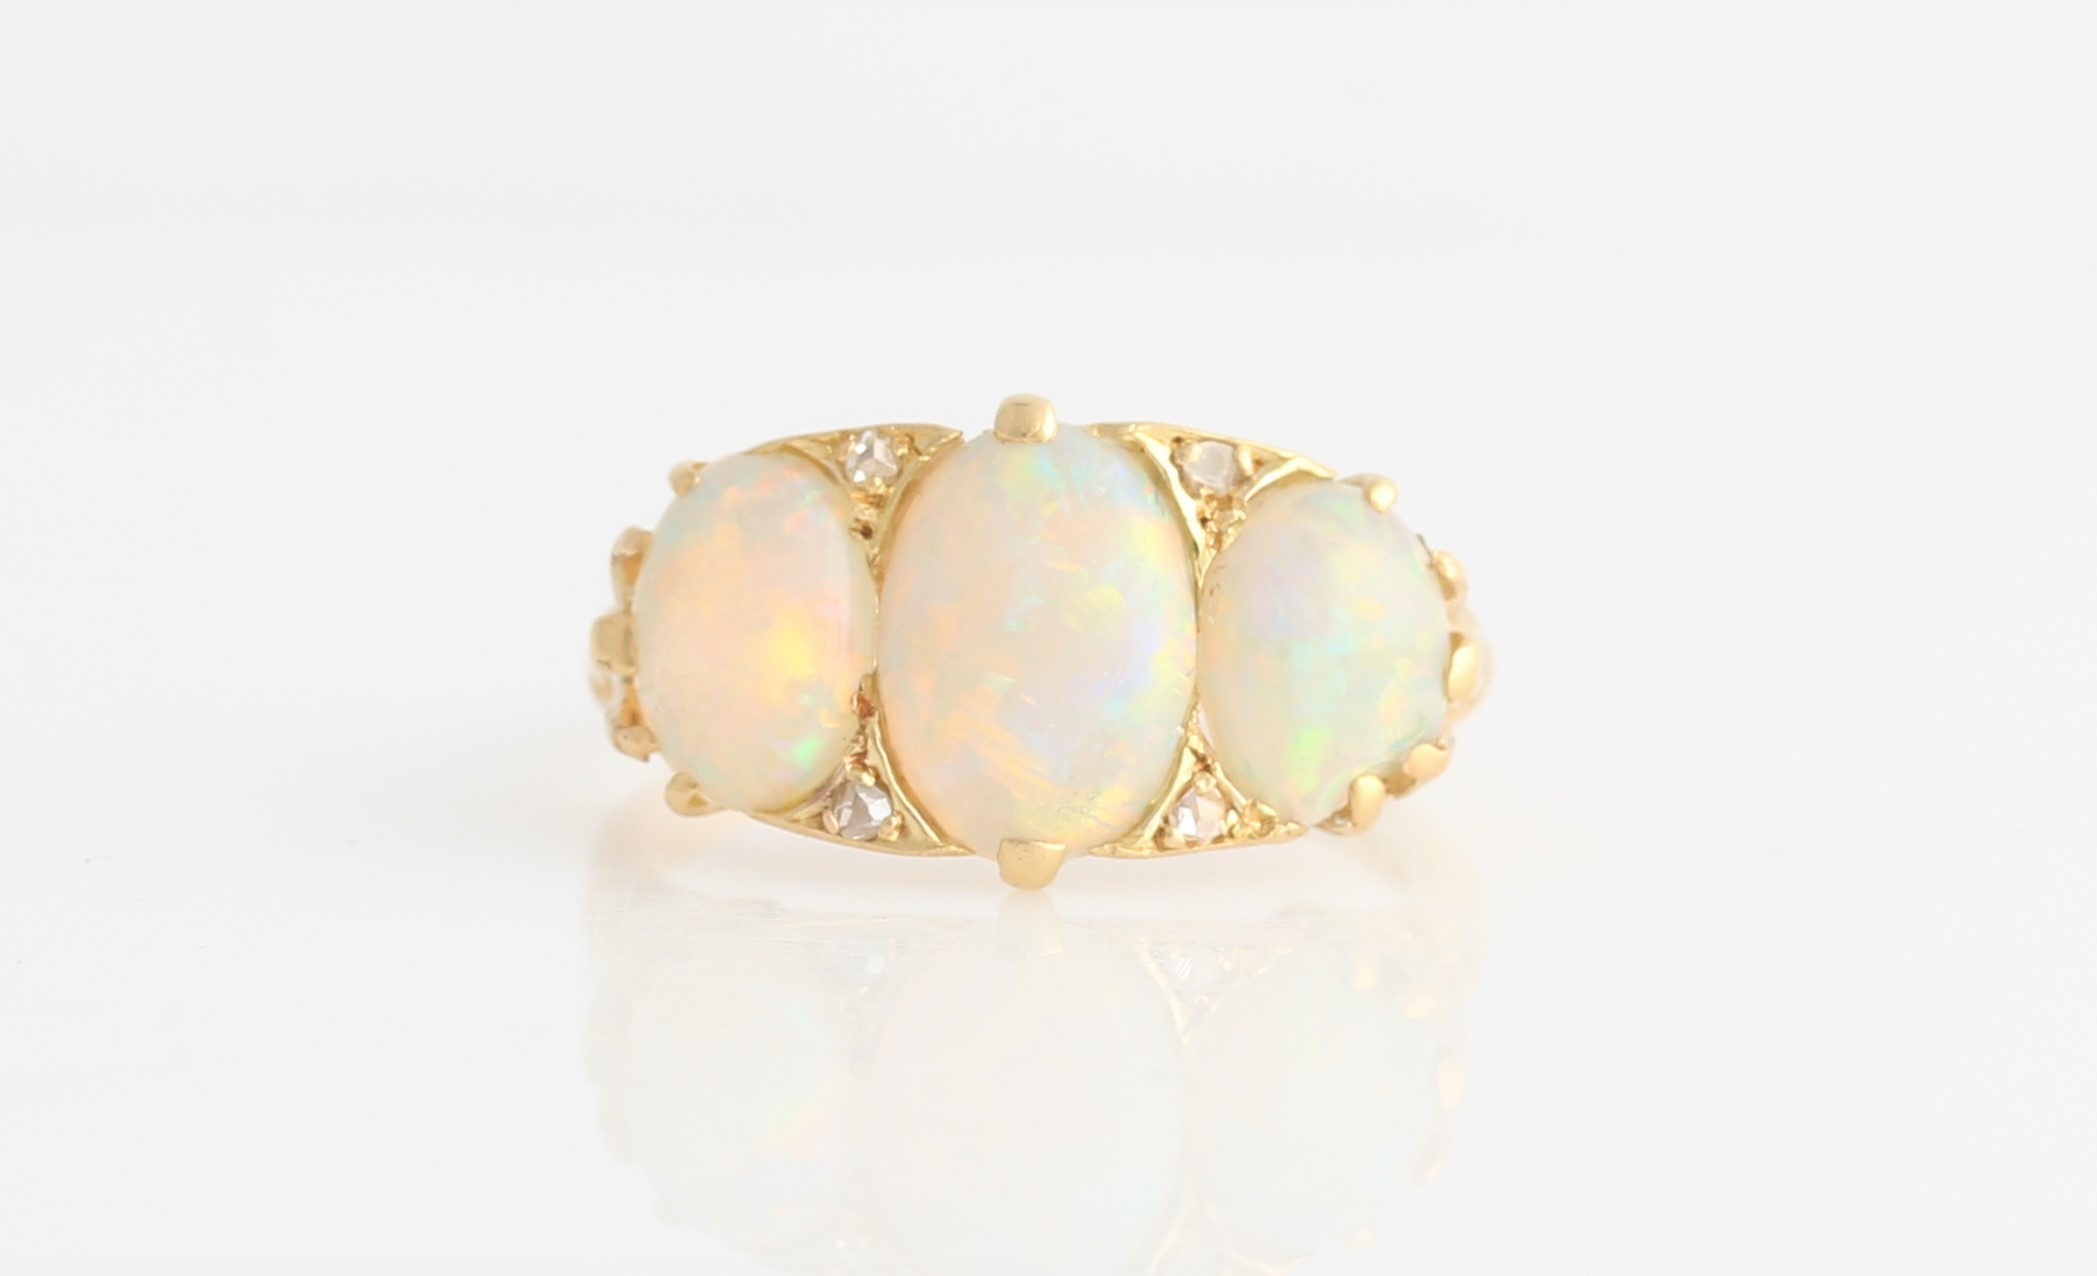 Lot 49 - An opal and diamond ring, set with three graduated oval opal cabochons separated by four rose cut